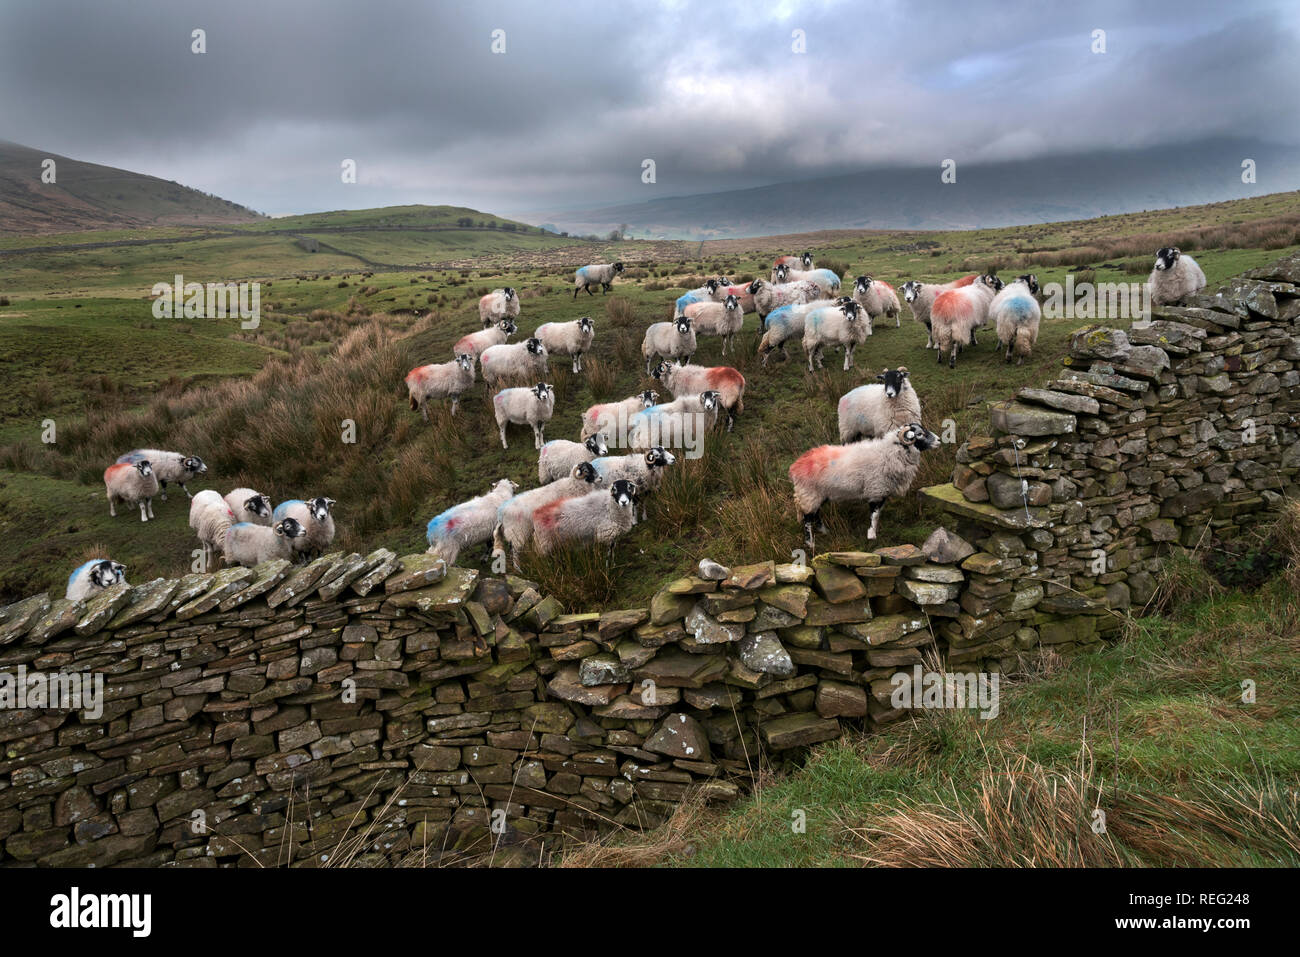 Dentdale, Cumbria, UK. 21st January 2019. Swaledale sheep graze under a heavy grey Winter sky on upland moorlands in Dentdale, Yorkshire Dales National Park. Credit: John Bentley/Alamy Live News - Stock Image